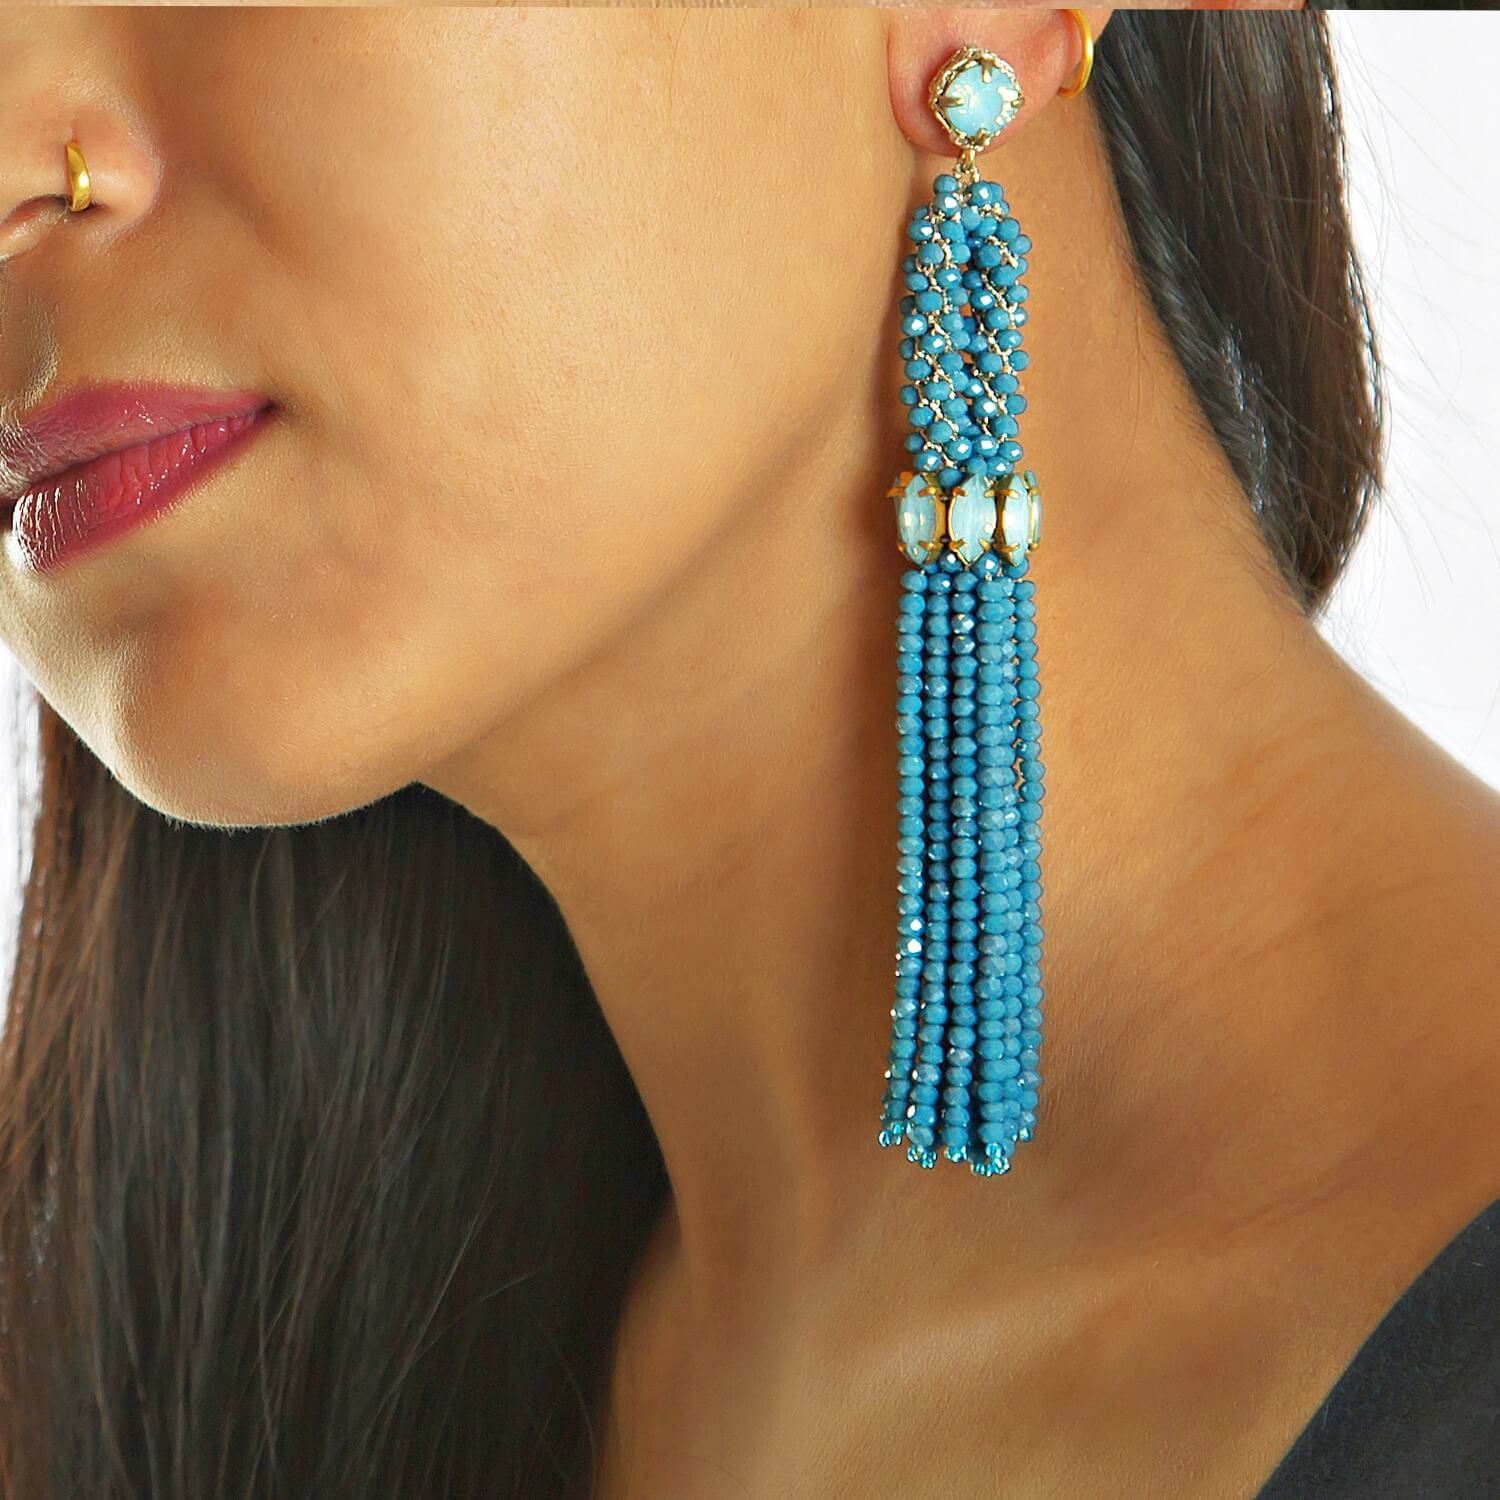 Aqua Tain Earring - Model